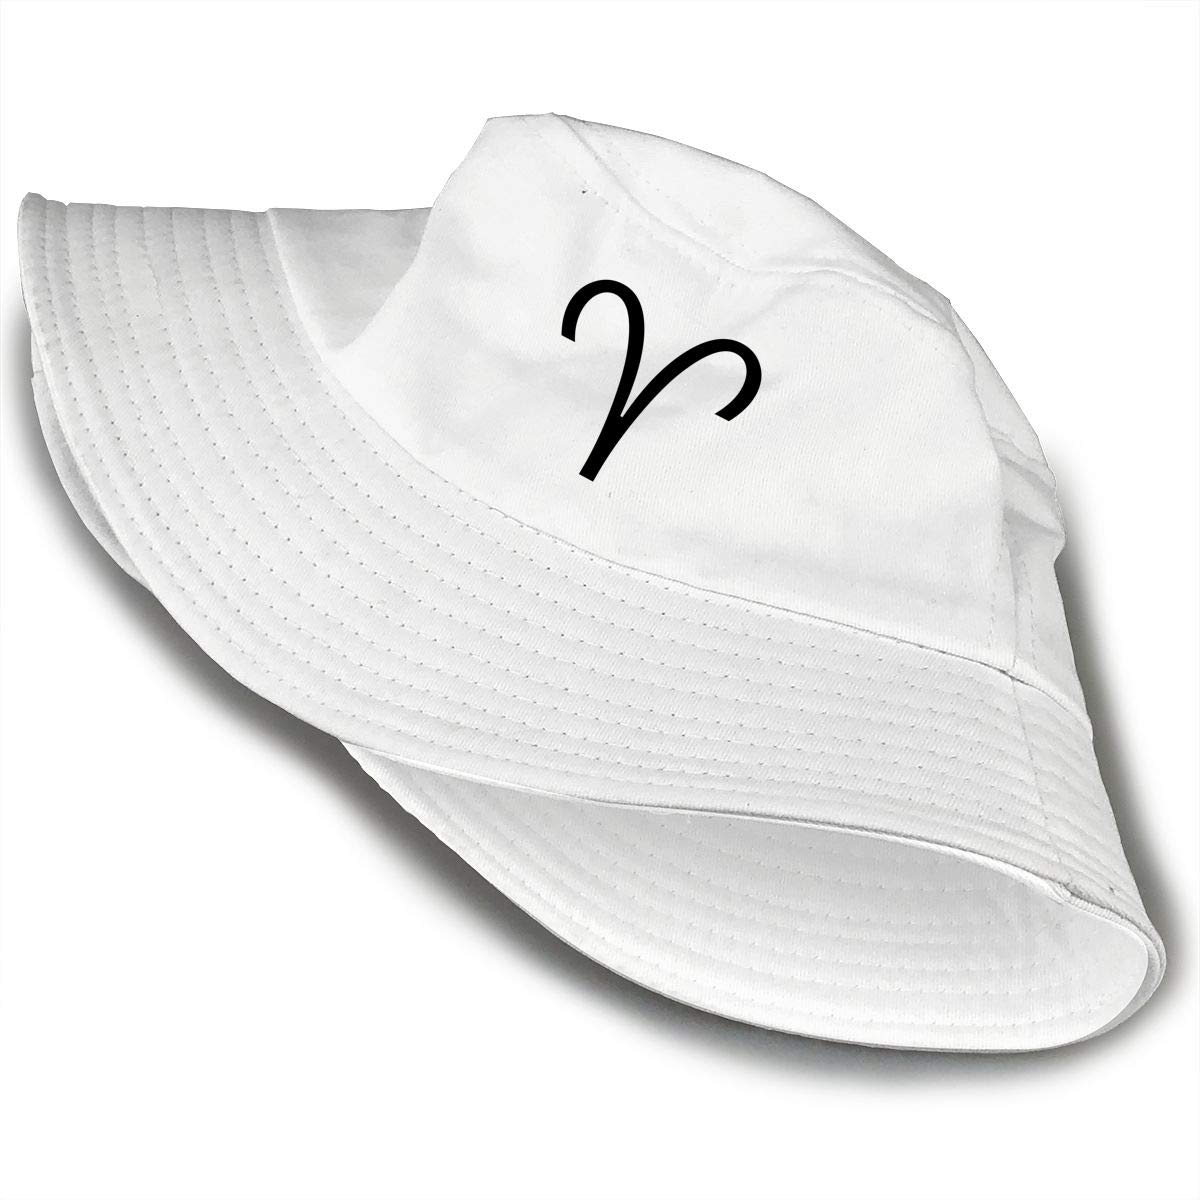 PPAN Aries Unisex Cotton Packable White Travel Bucket Hat Fishing Cap